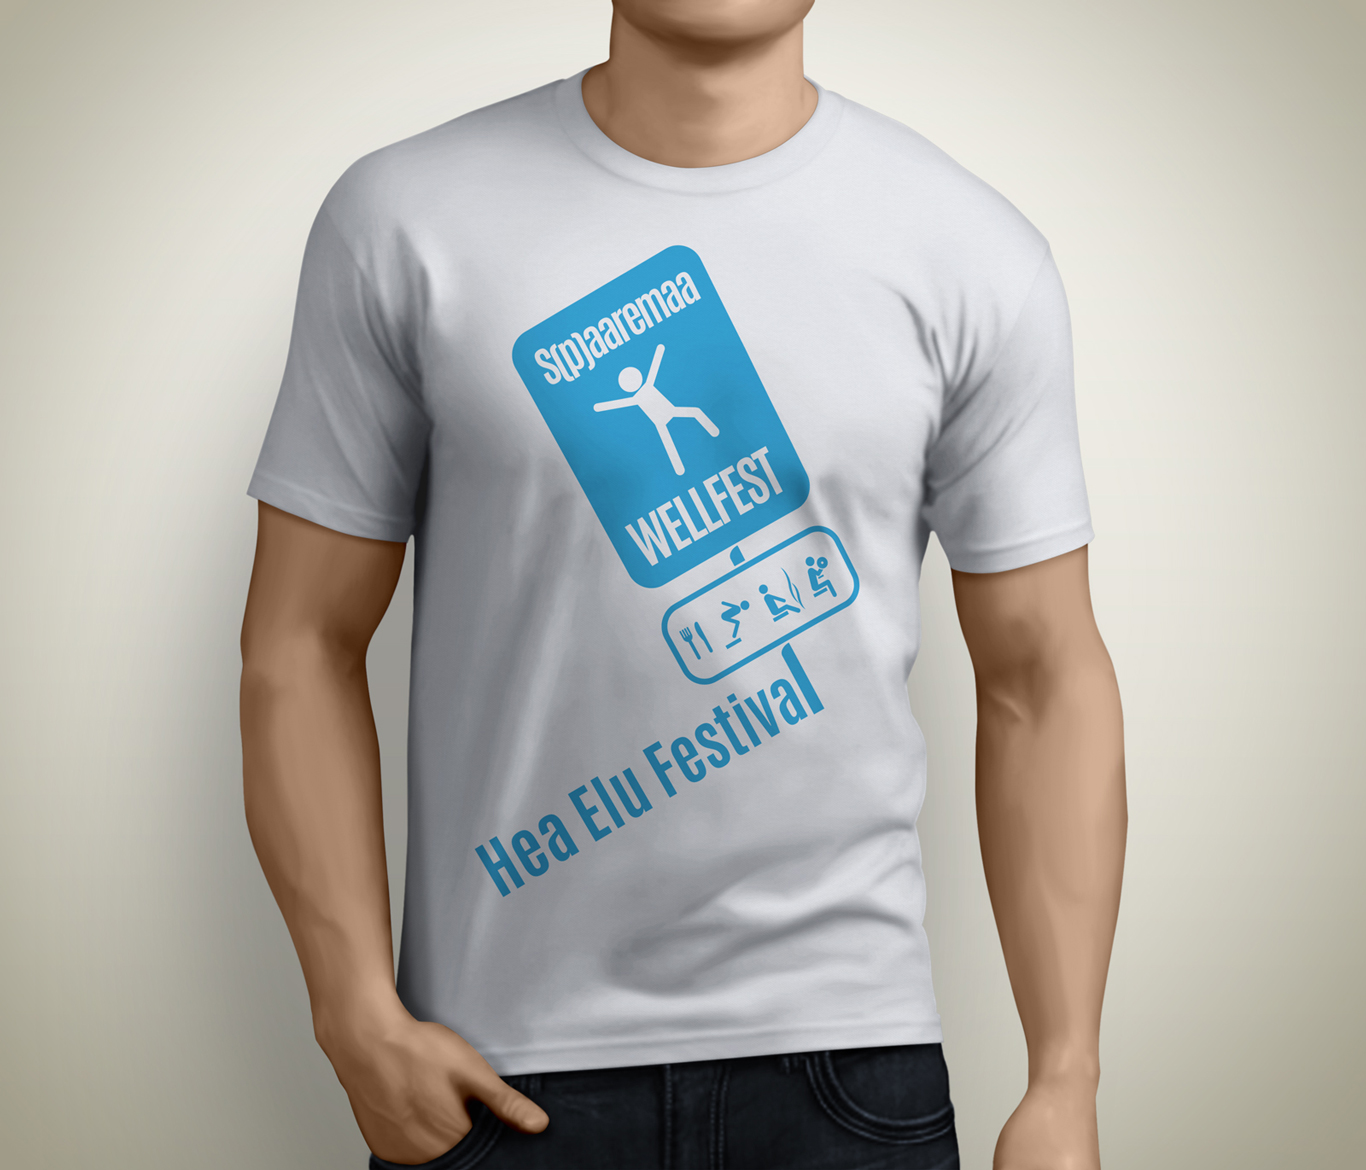 wellfest-T-Shirt-Male-Front